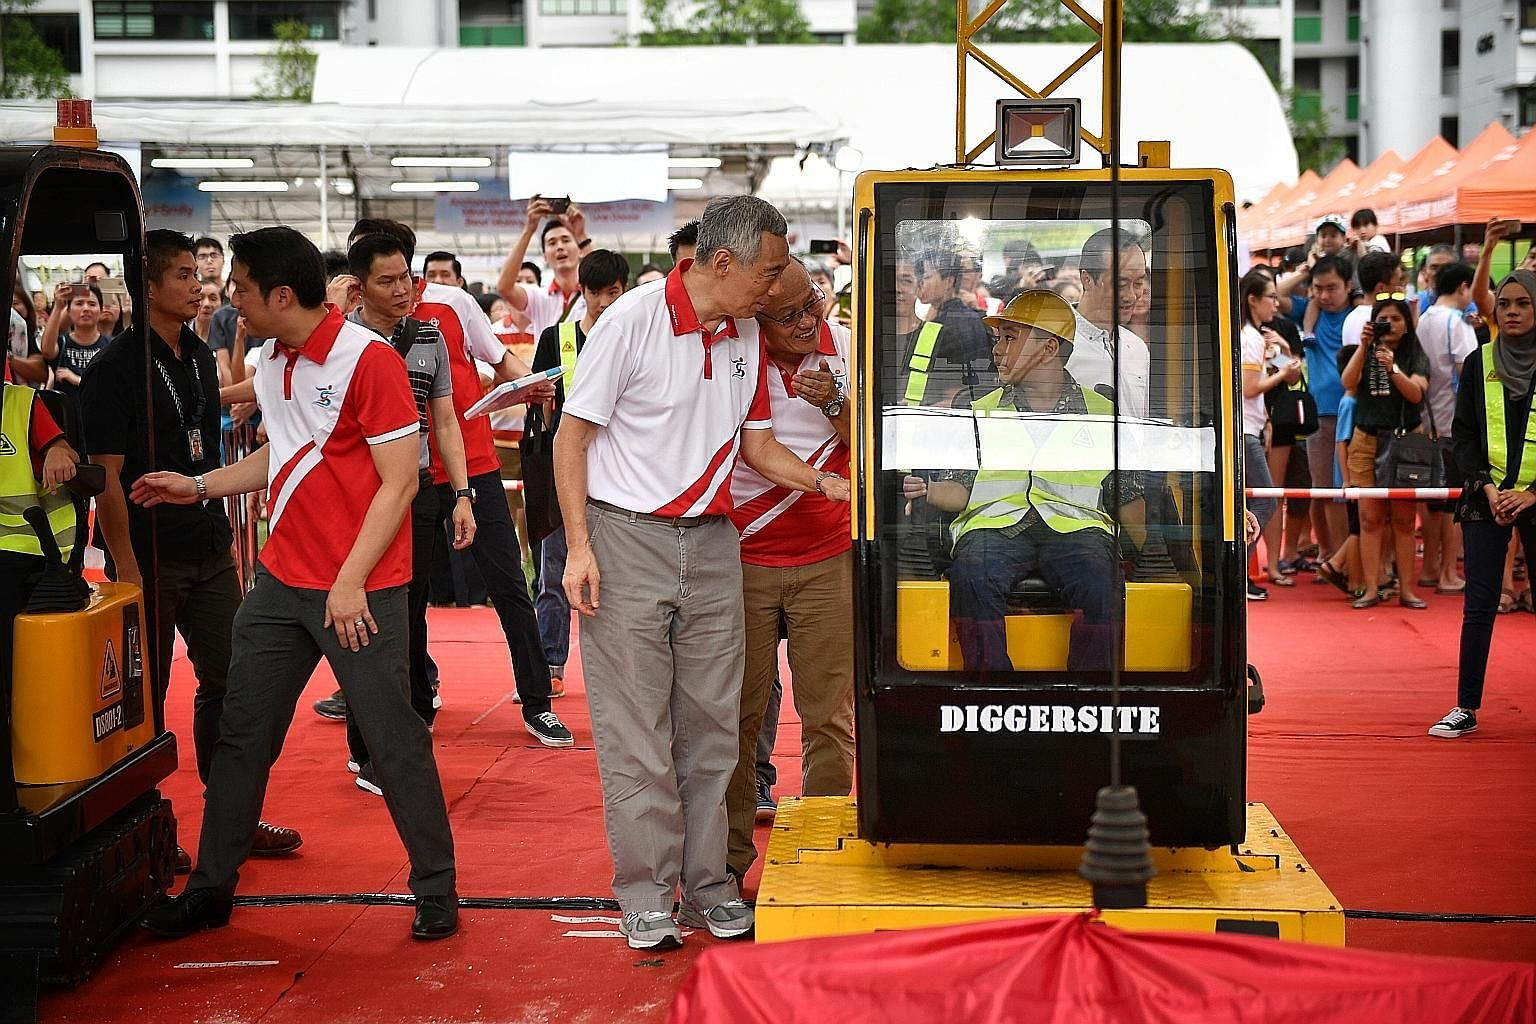 Prime Minister Lee Hsien Loong at the groundbreaking event for a new community hub that is set to open in Sengkang West in 2020.